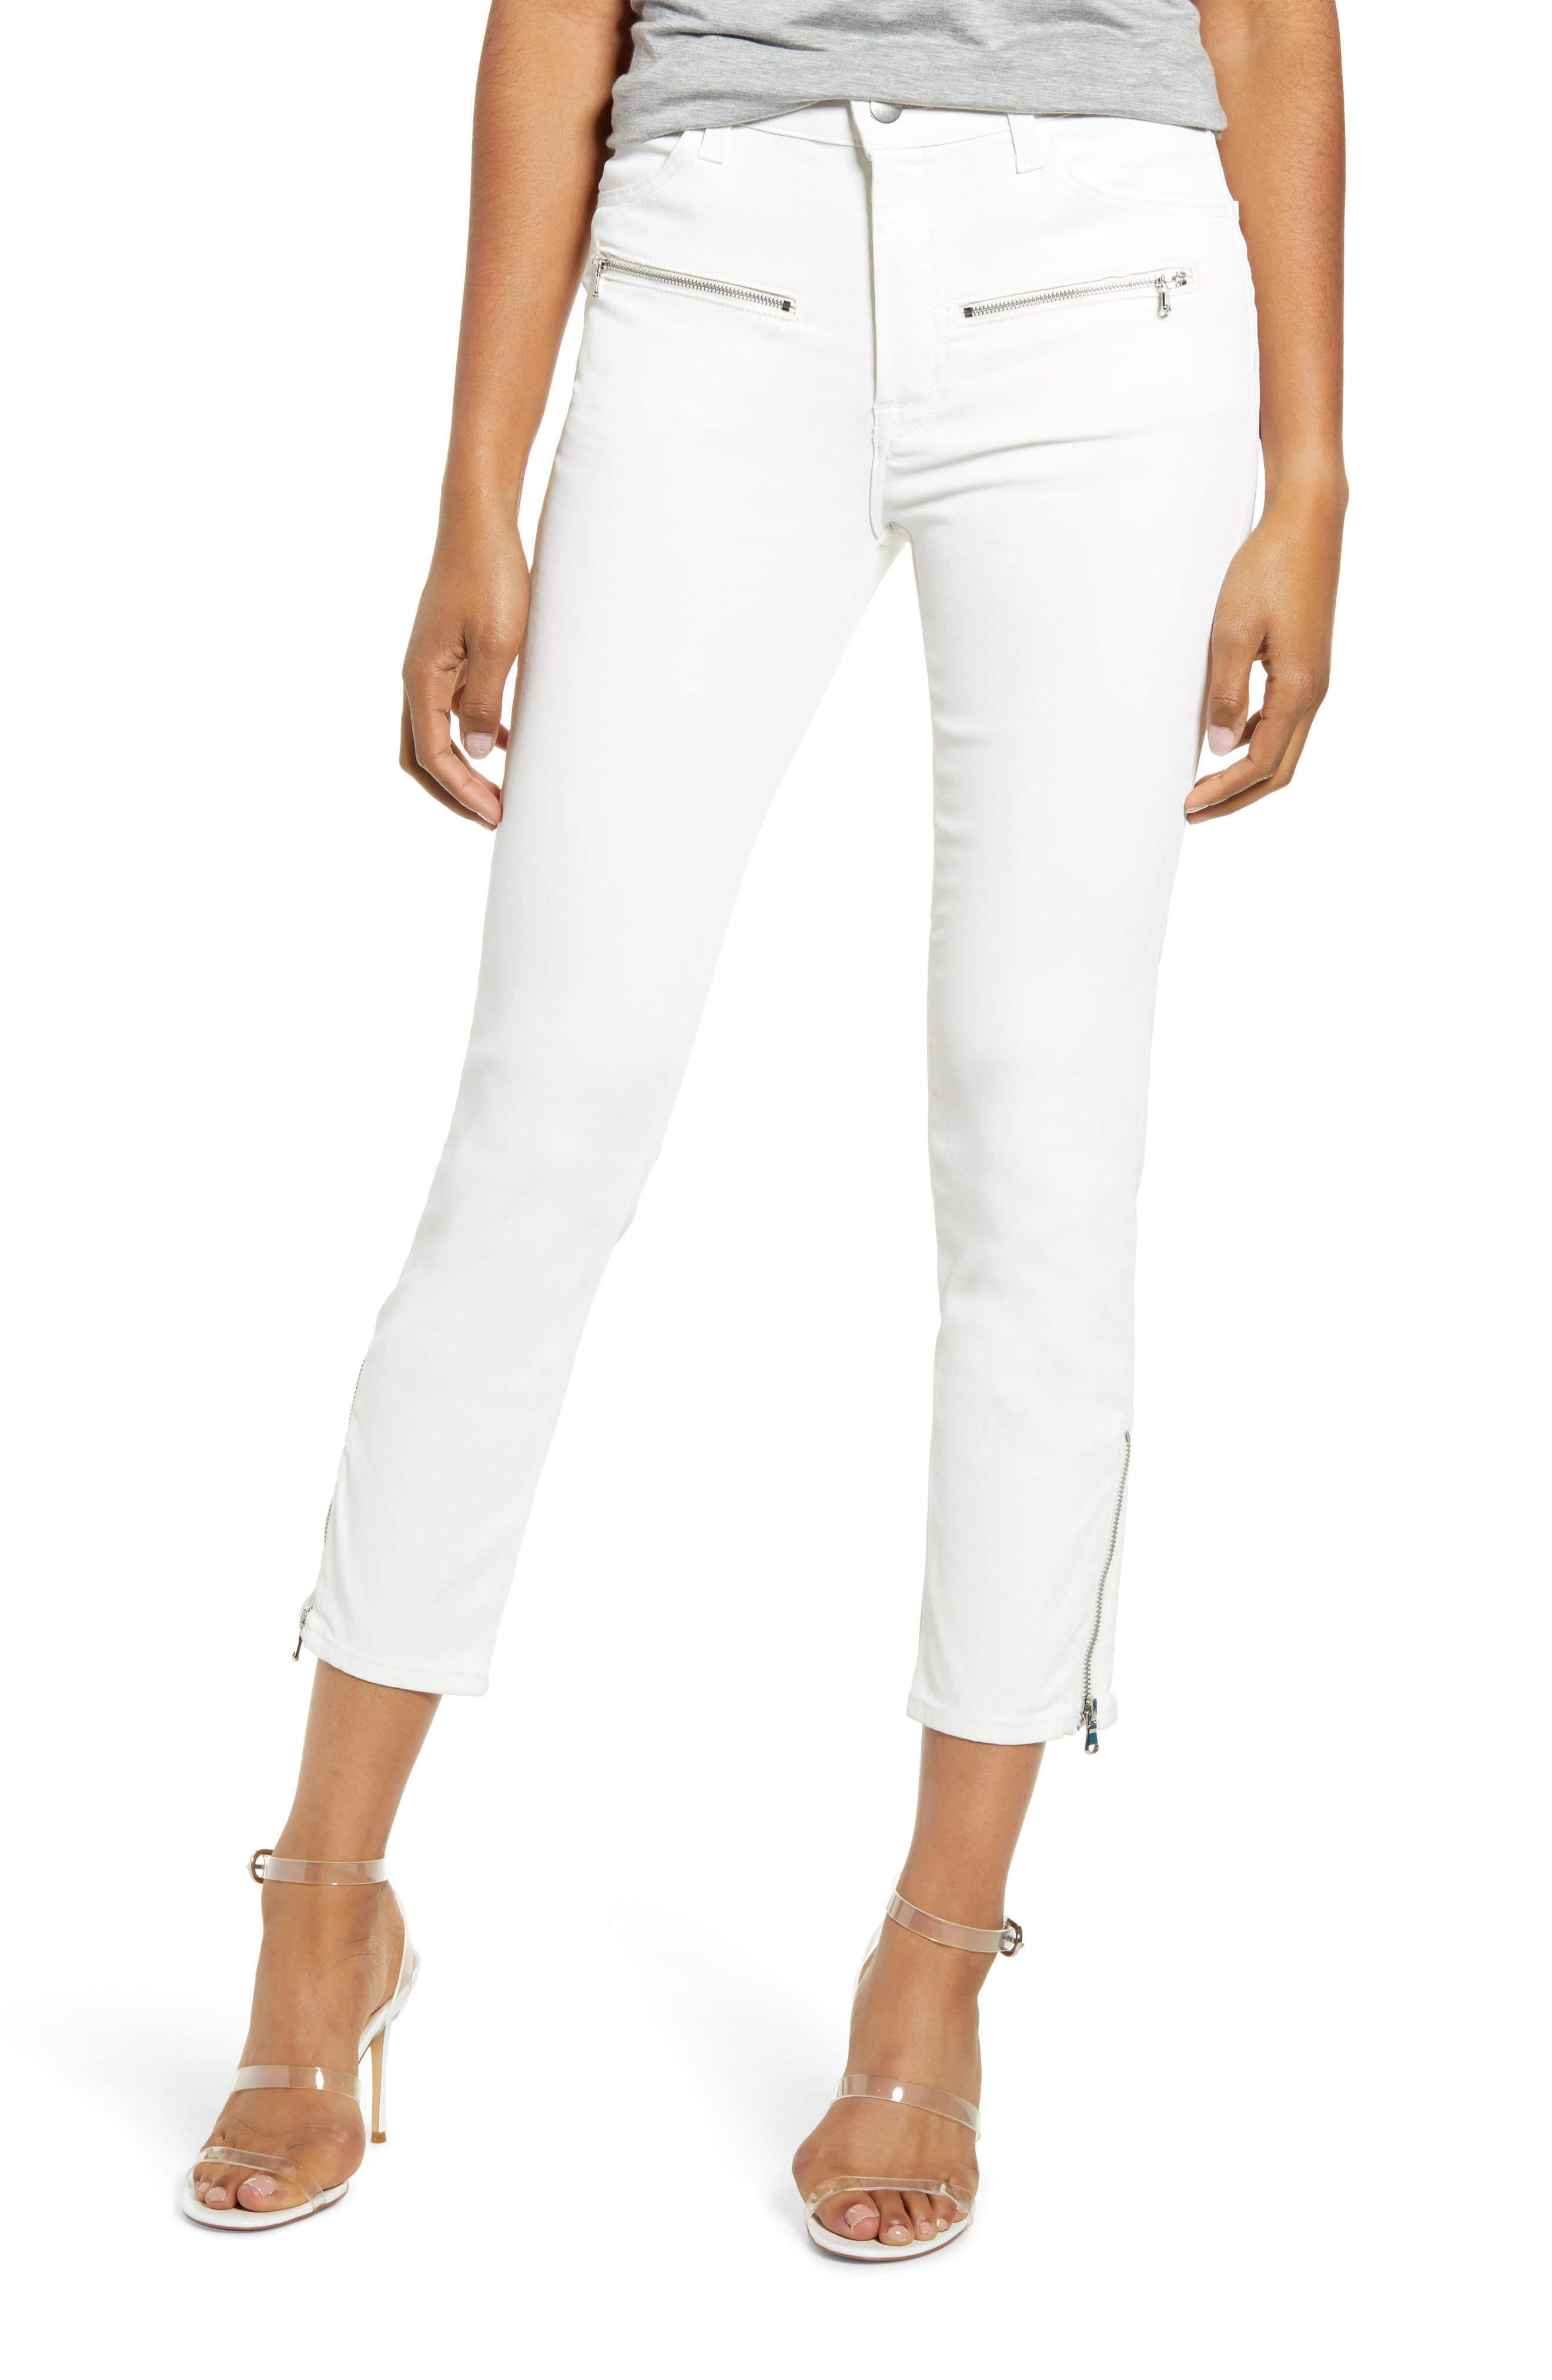 J Brand Jeans Moto Ruby High Waist Crop Cigarette Jeans